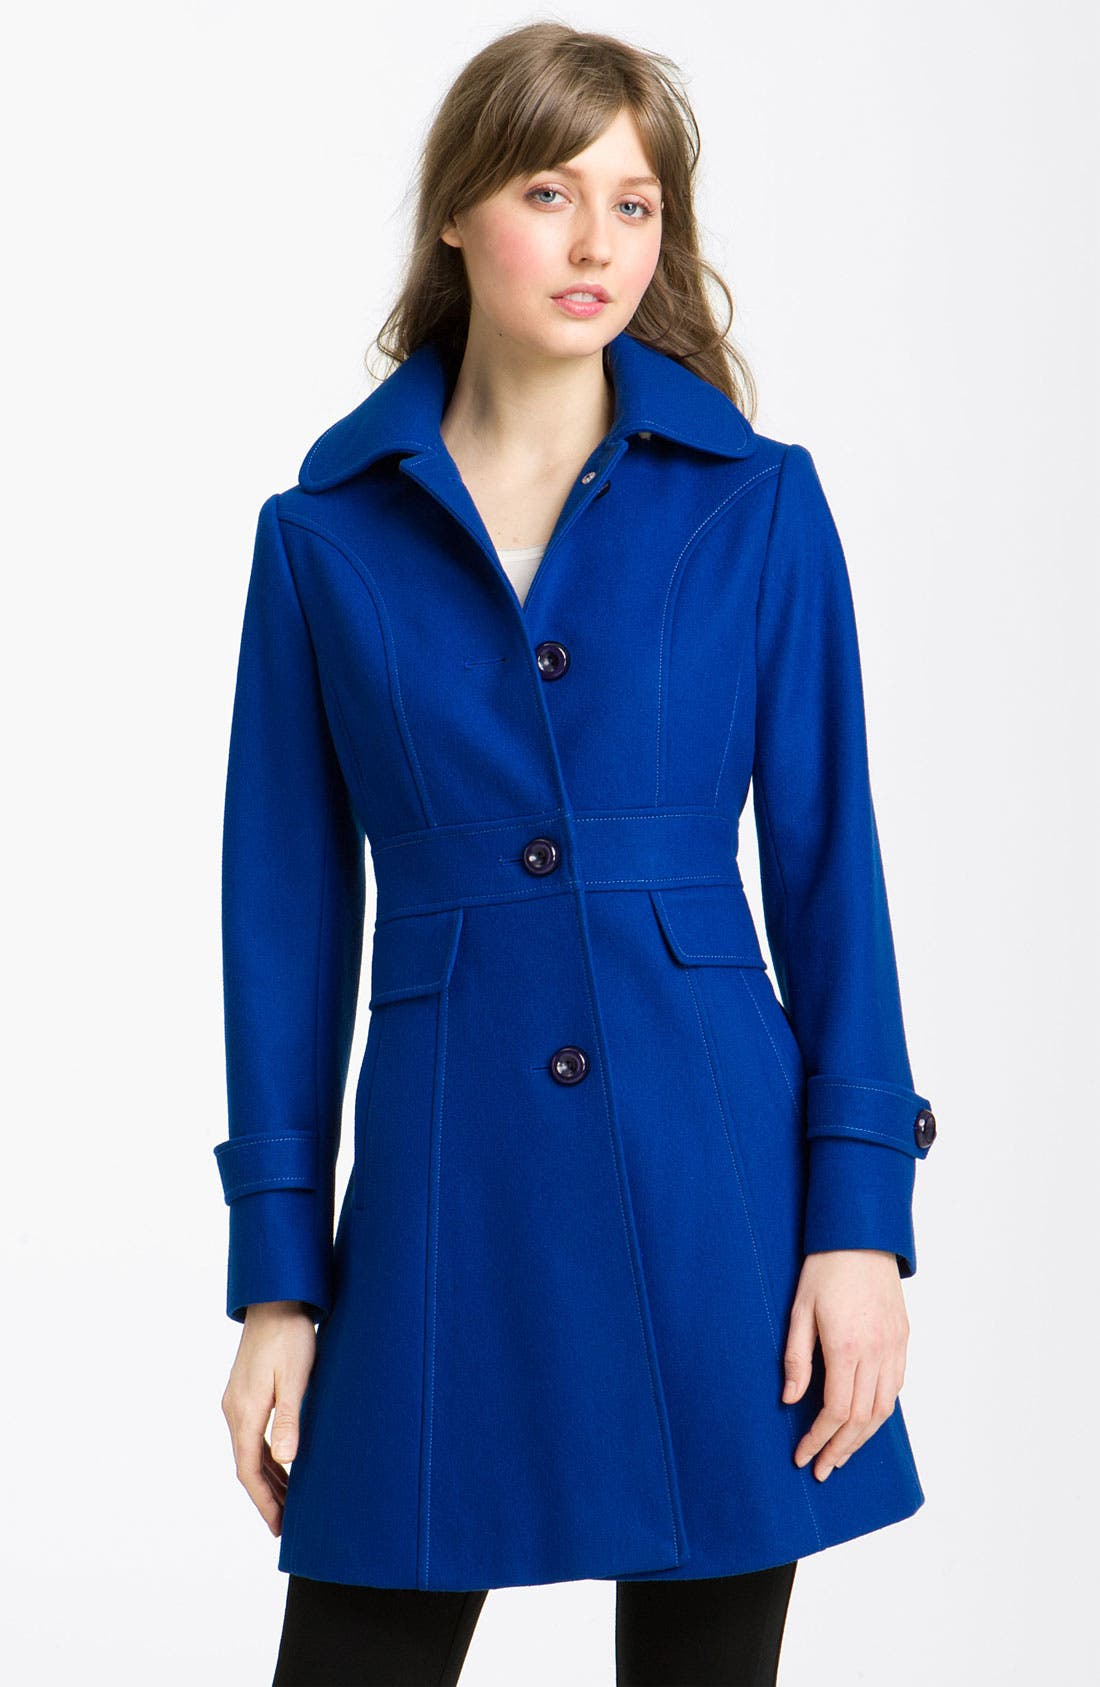 Main Image - Kenneth Cole New York Single Breasted Walking Coat (Petite)